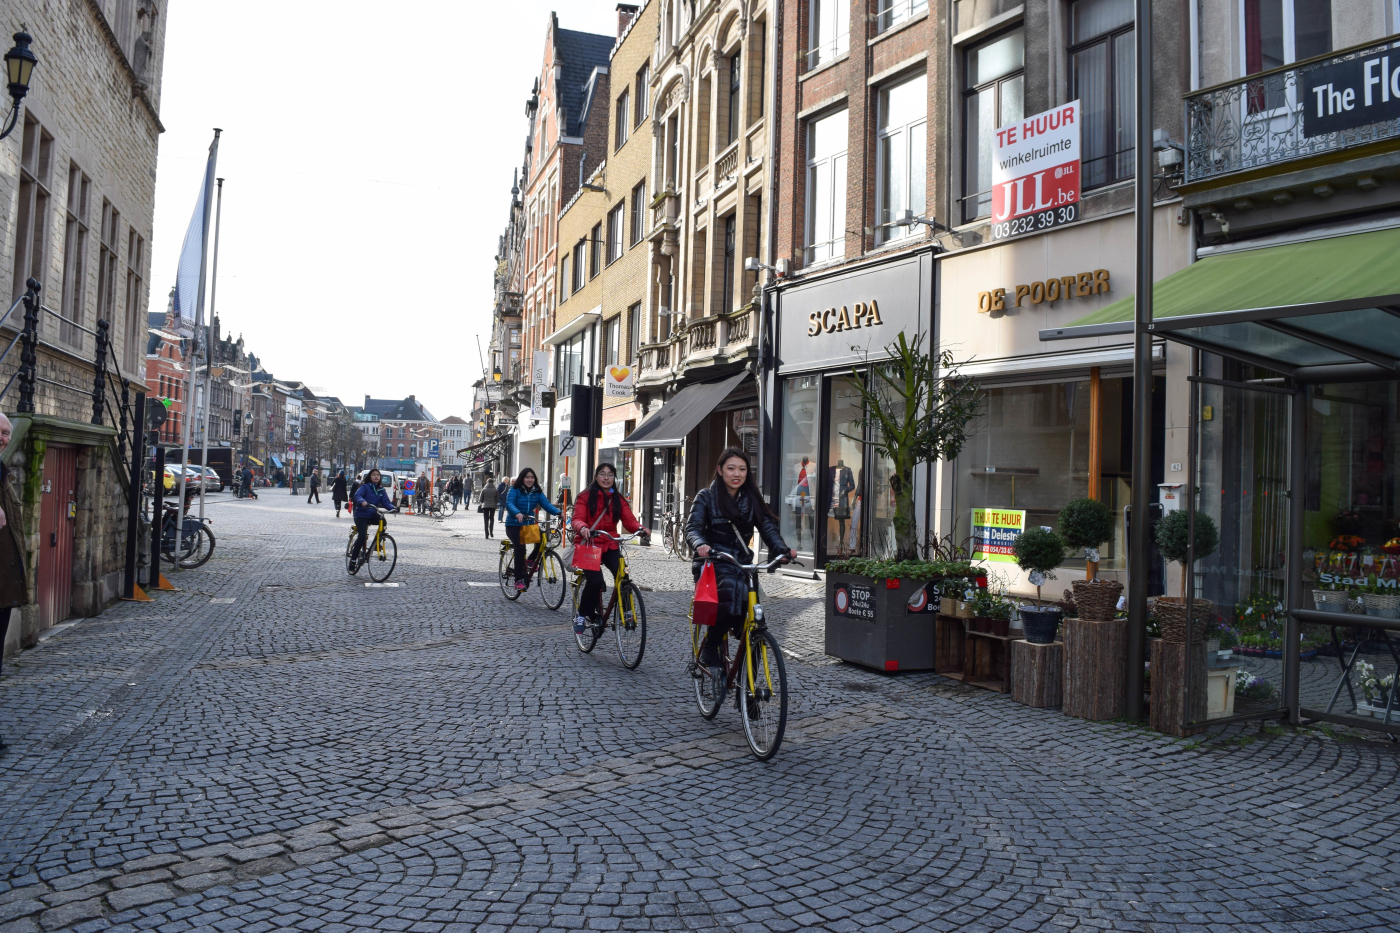 While in Mechelen, Belgium, groups of students had the opportunity to explore the city on bikes, or were given the chance to roam on foot. Ruoxi Ni '17 leads her group through the city, which is situated in the north of the country. (photo: Annie Kim)